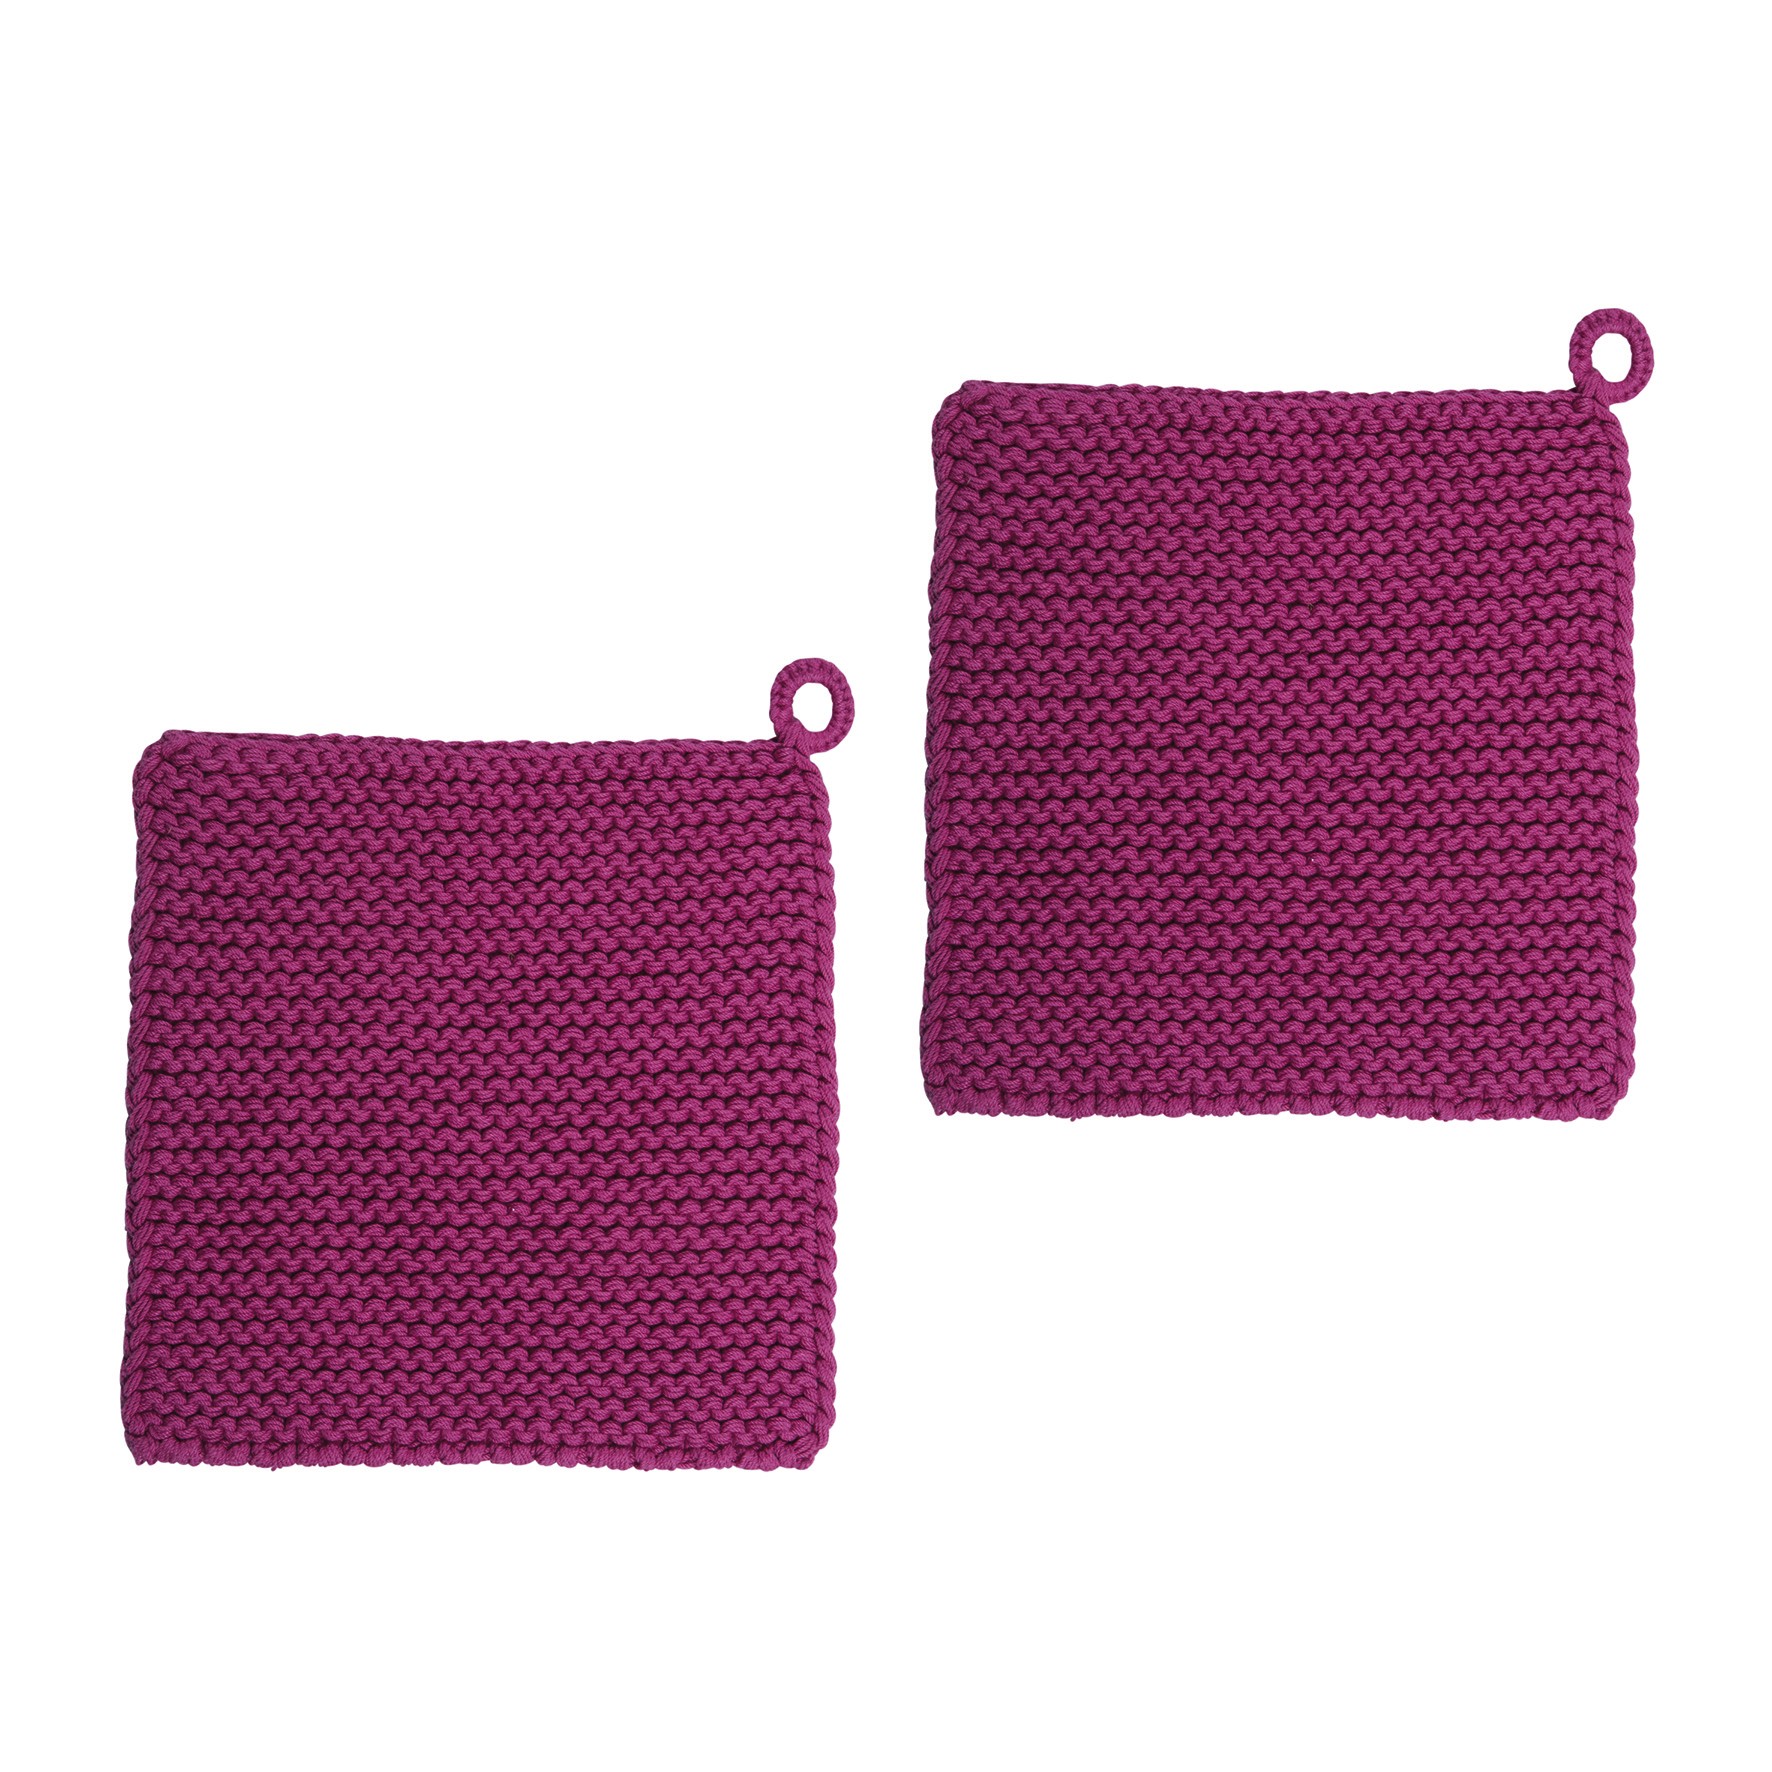 Topflappen - Twist Fuchsia 25x25 2er Pack - PAD home design